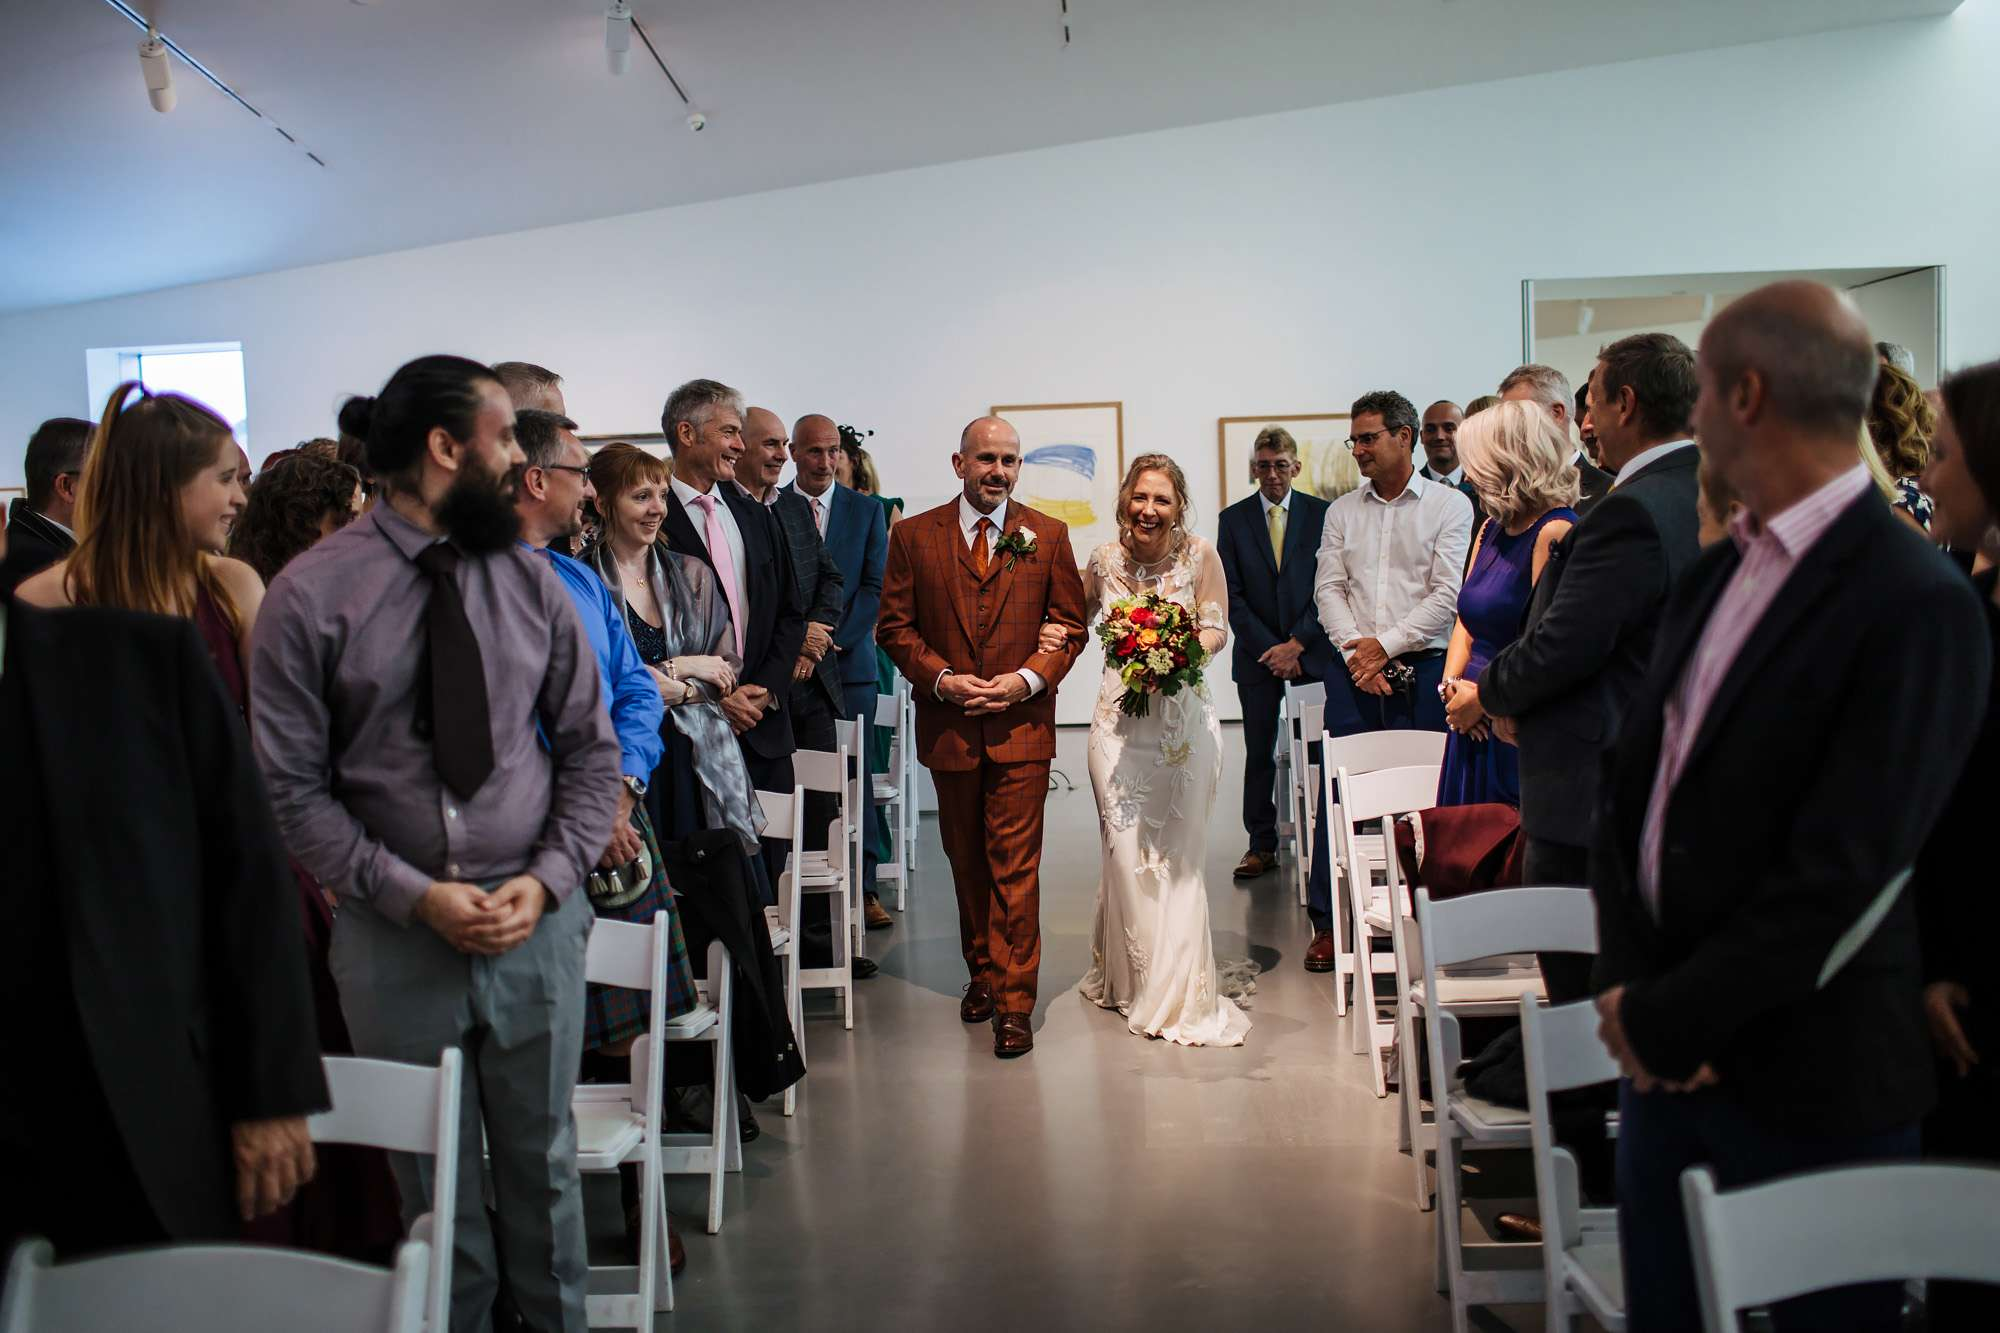 Bride and groom walk down the aisle at Hepworth Art Gallery